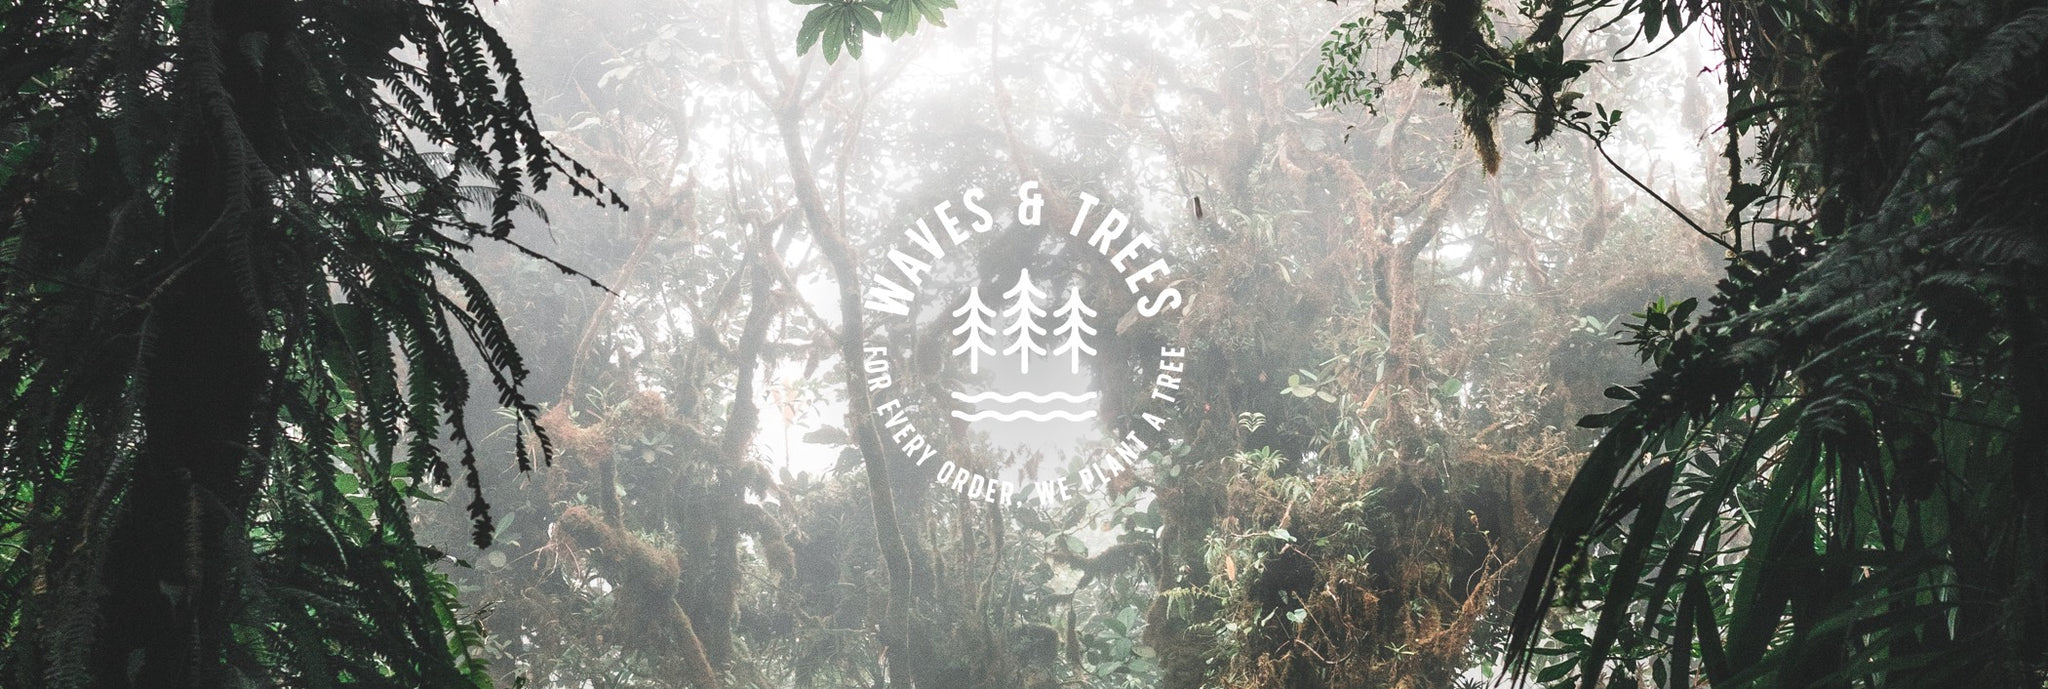 Waves & Trees: The Journey Continues